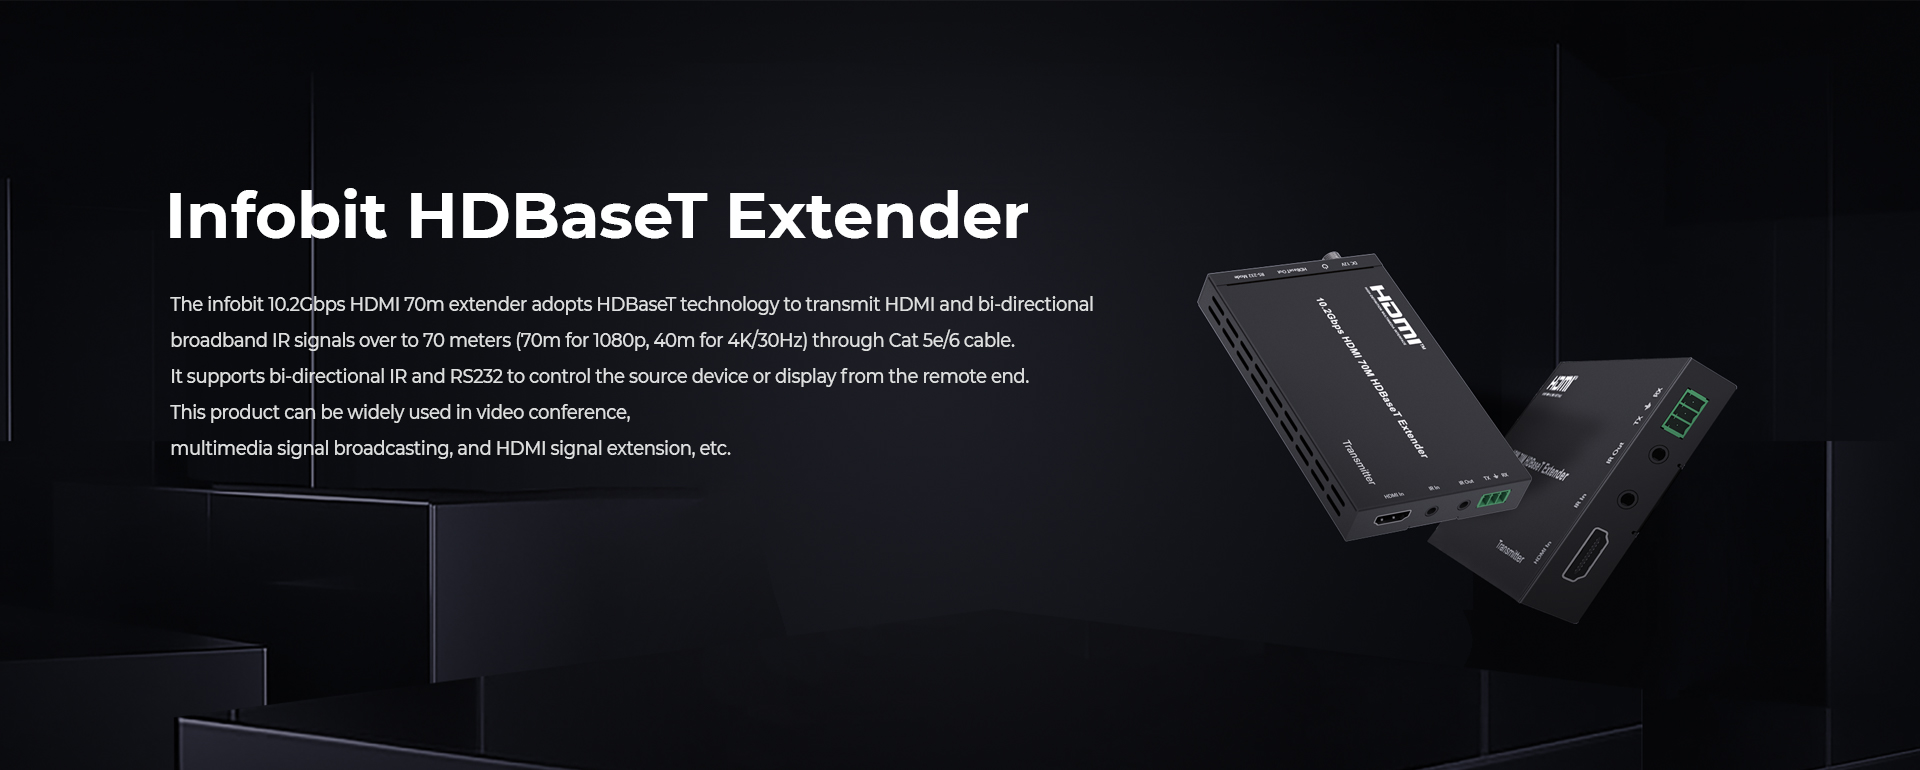 iTrans E70C 10.2Gbps HDMI HDBaseT extenders